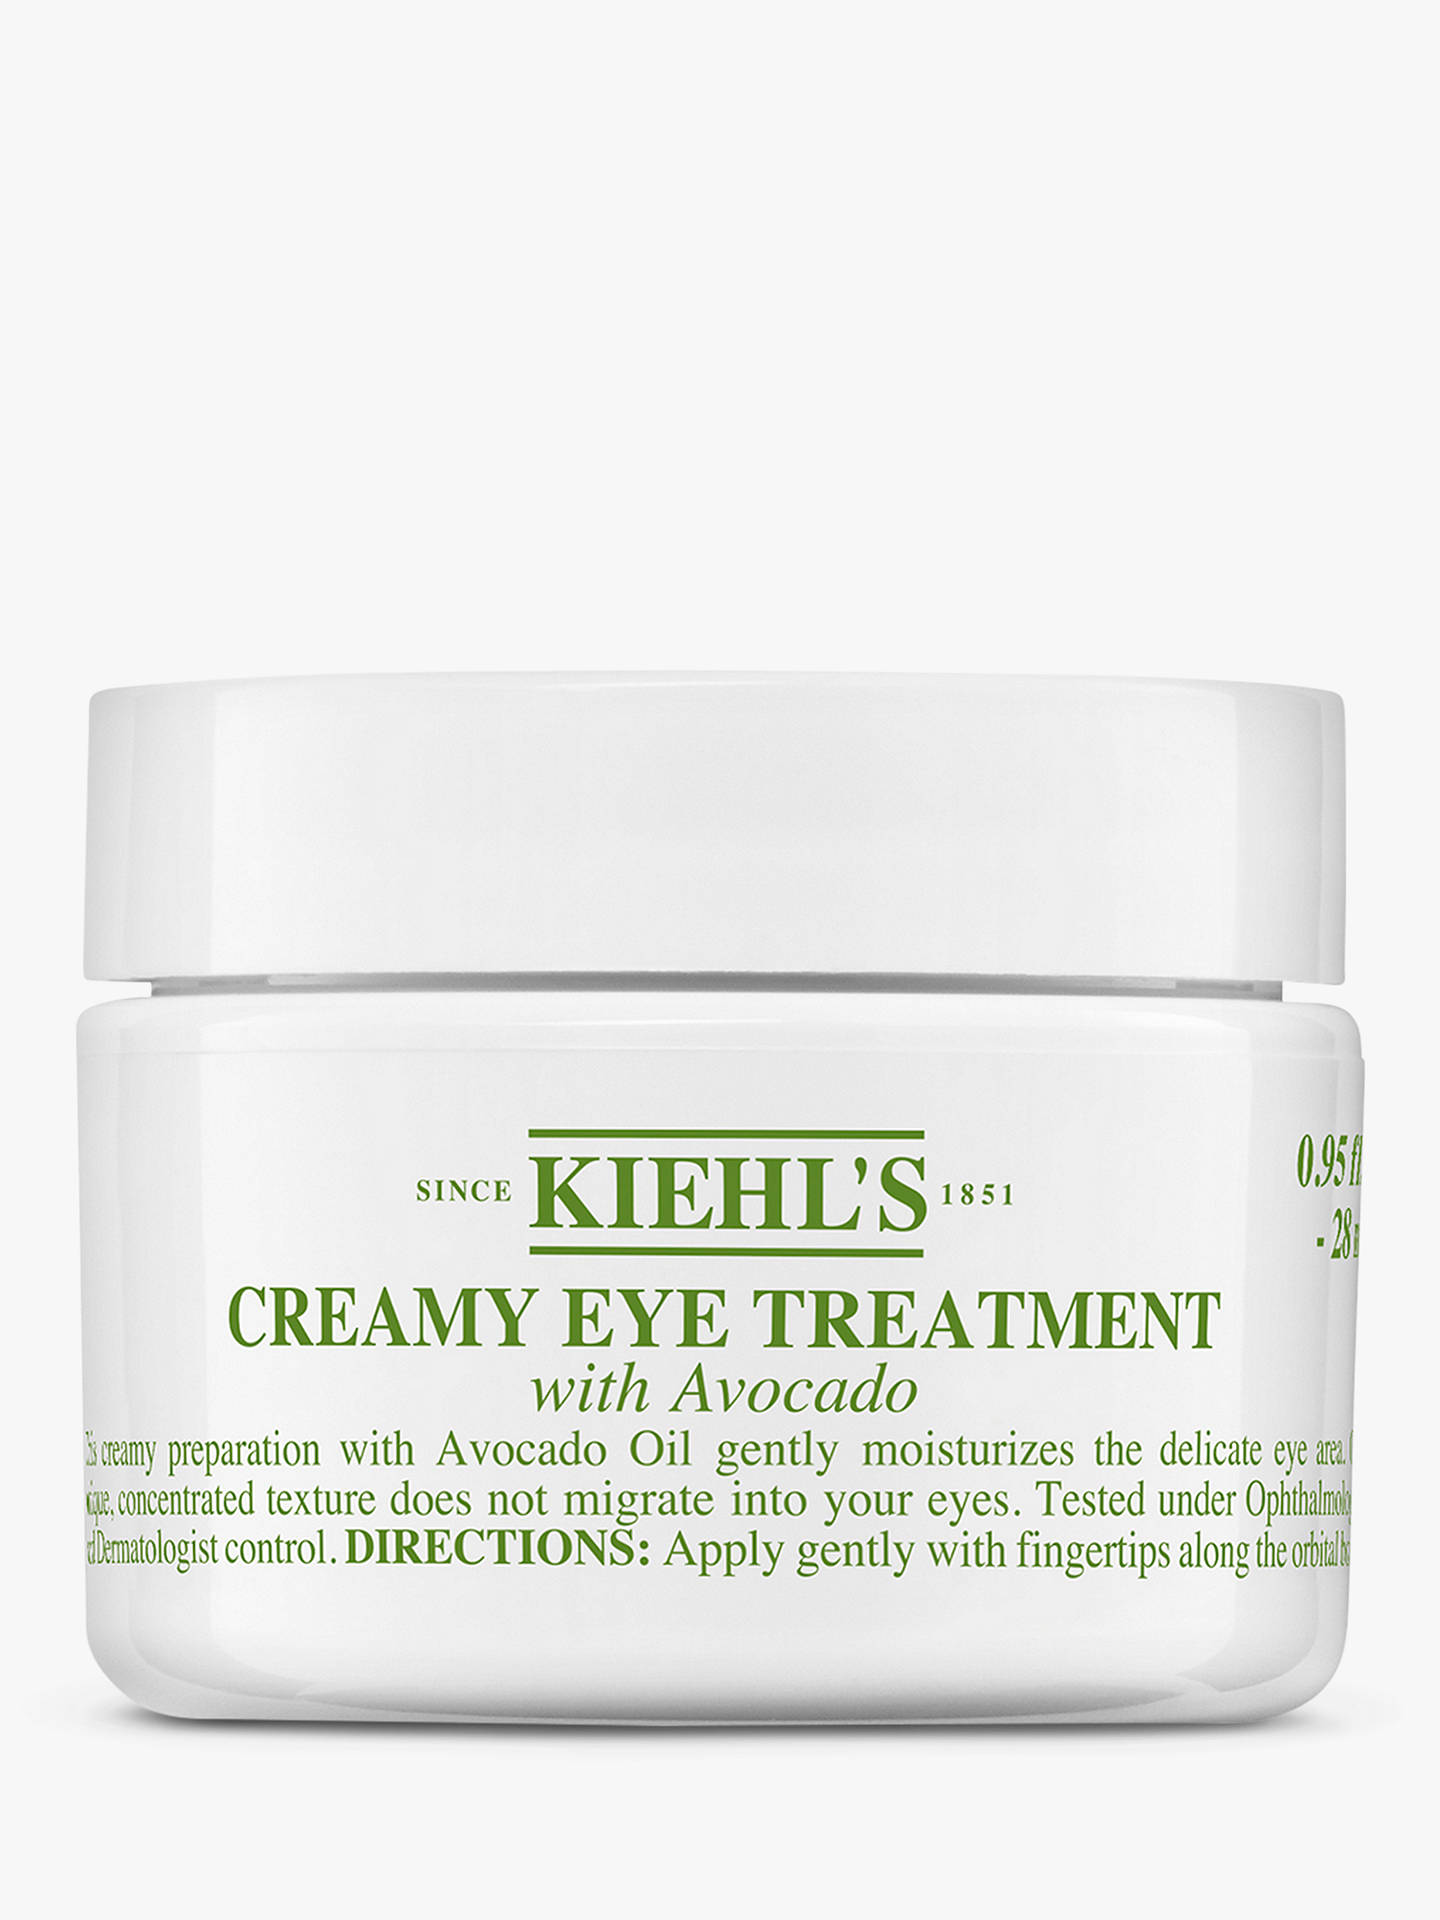 BuyKiehl's Creamy Eye Treatment with Avocado, 28ml Online at johnlewis.com